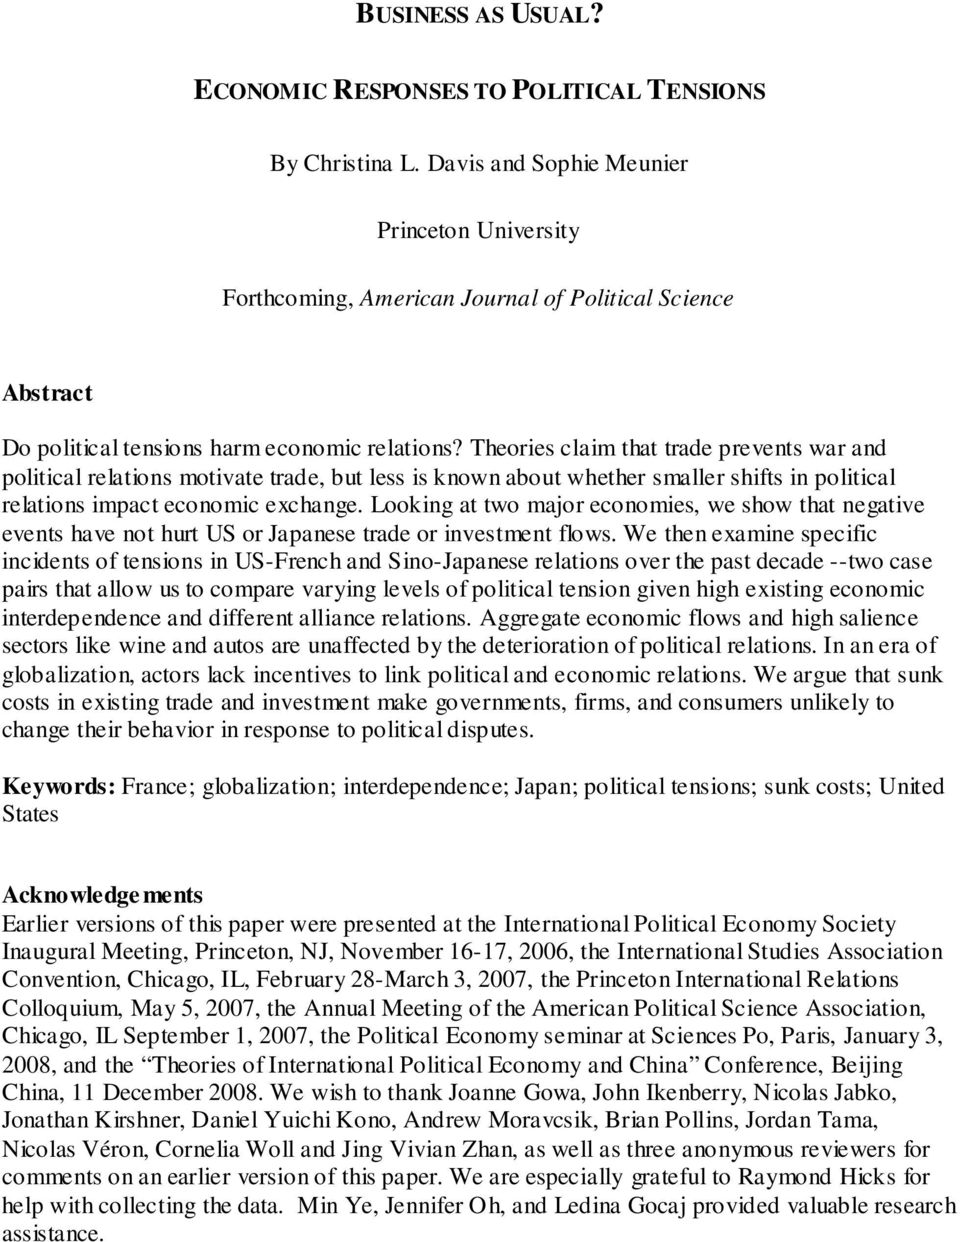 Theories claim that trade prevents war and political relations motivate trade, but less is known about whether smaller shifts in political relations impact economic exchange.